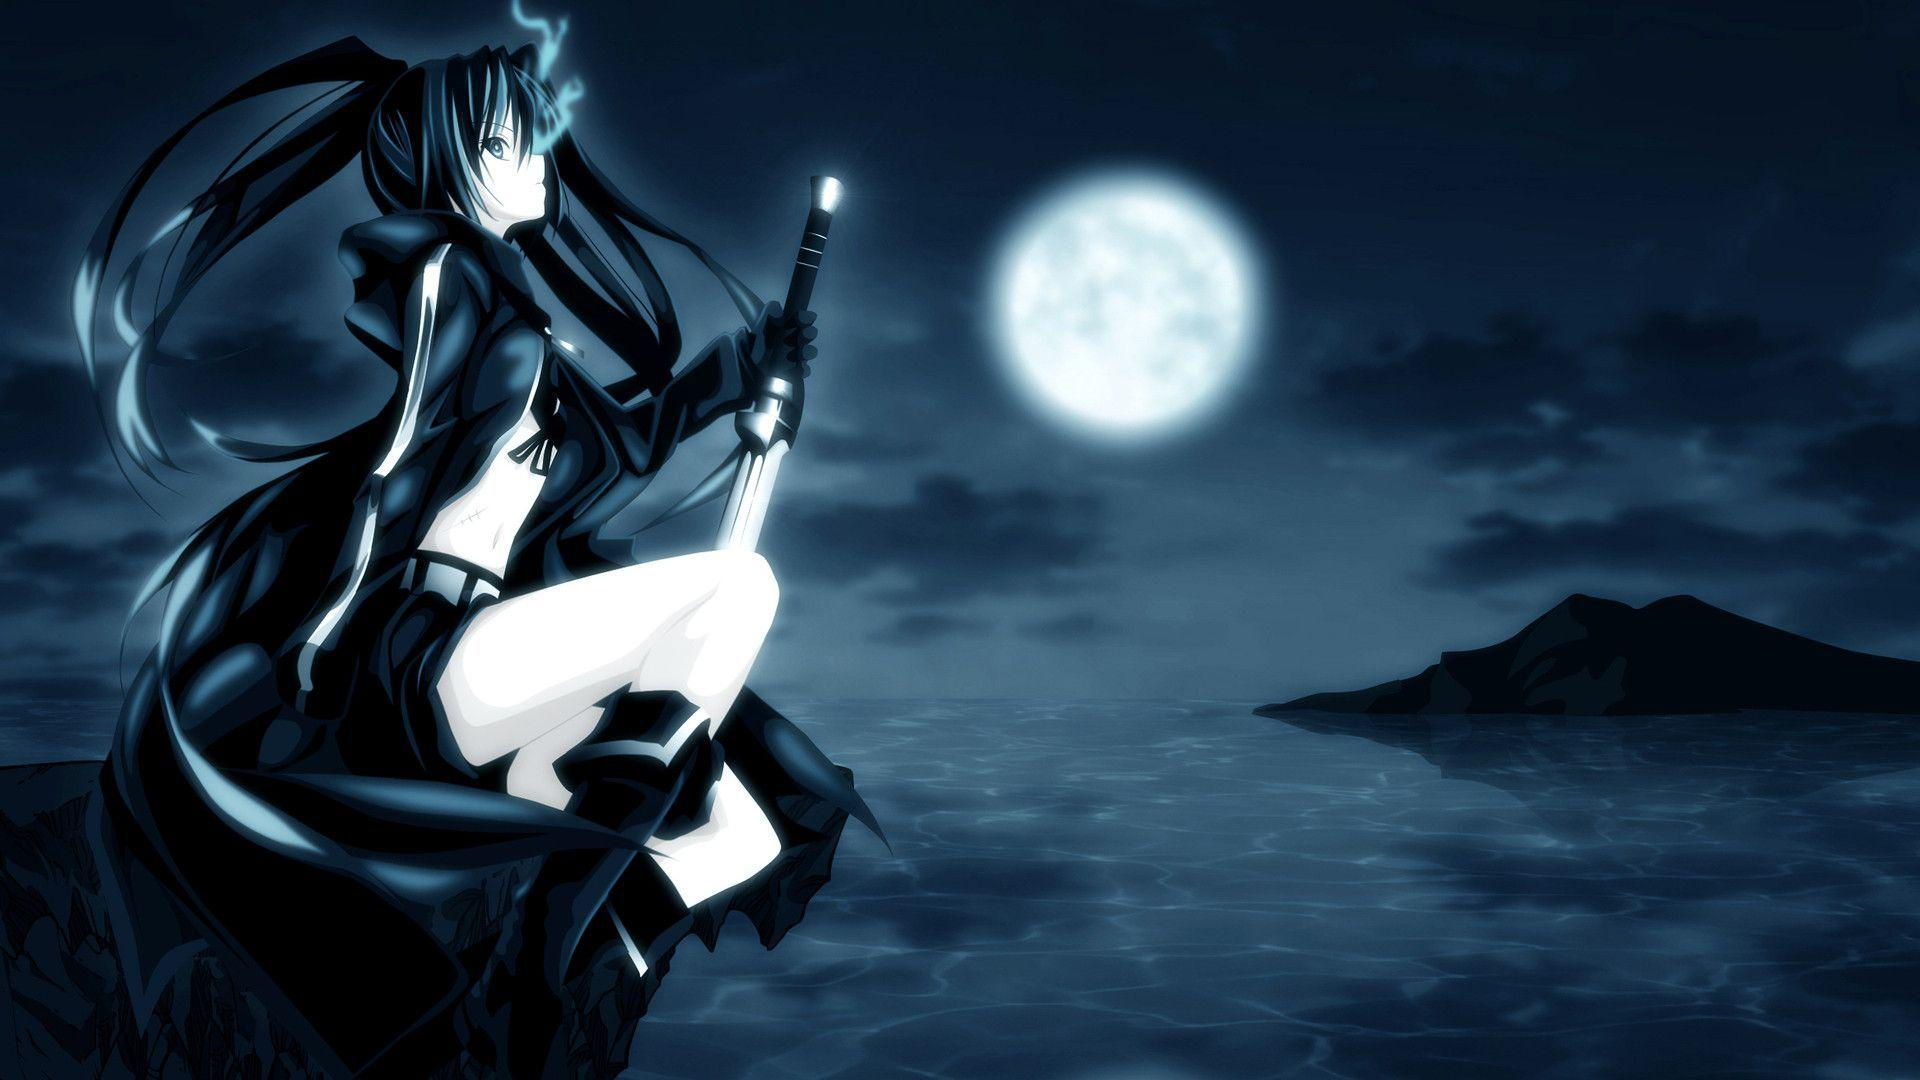 Black Rock Shooter 1920x1200 Anime Wallpaper - #